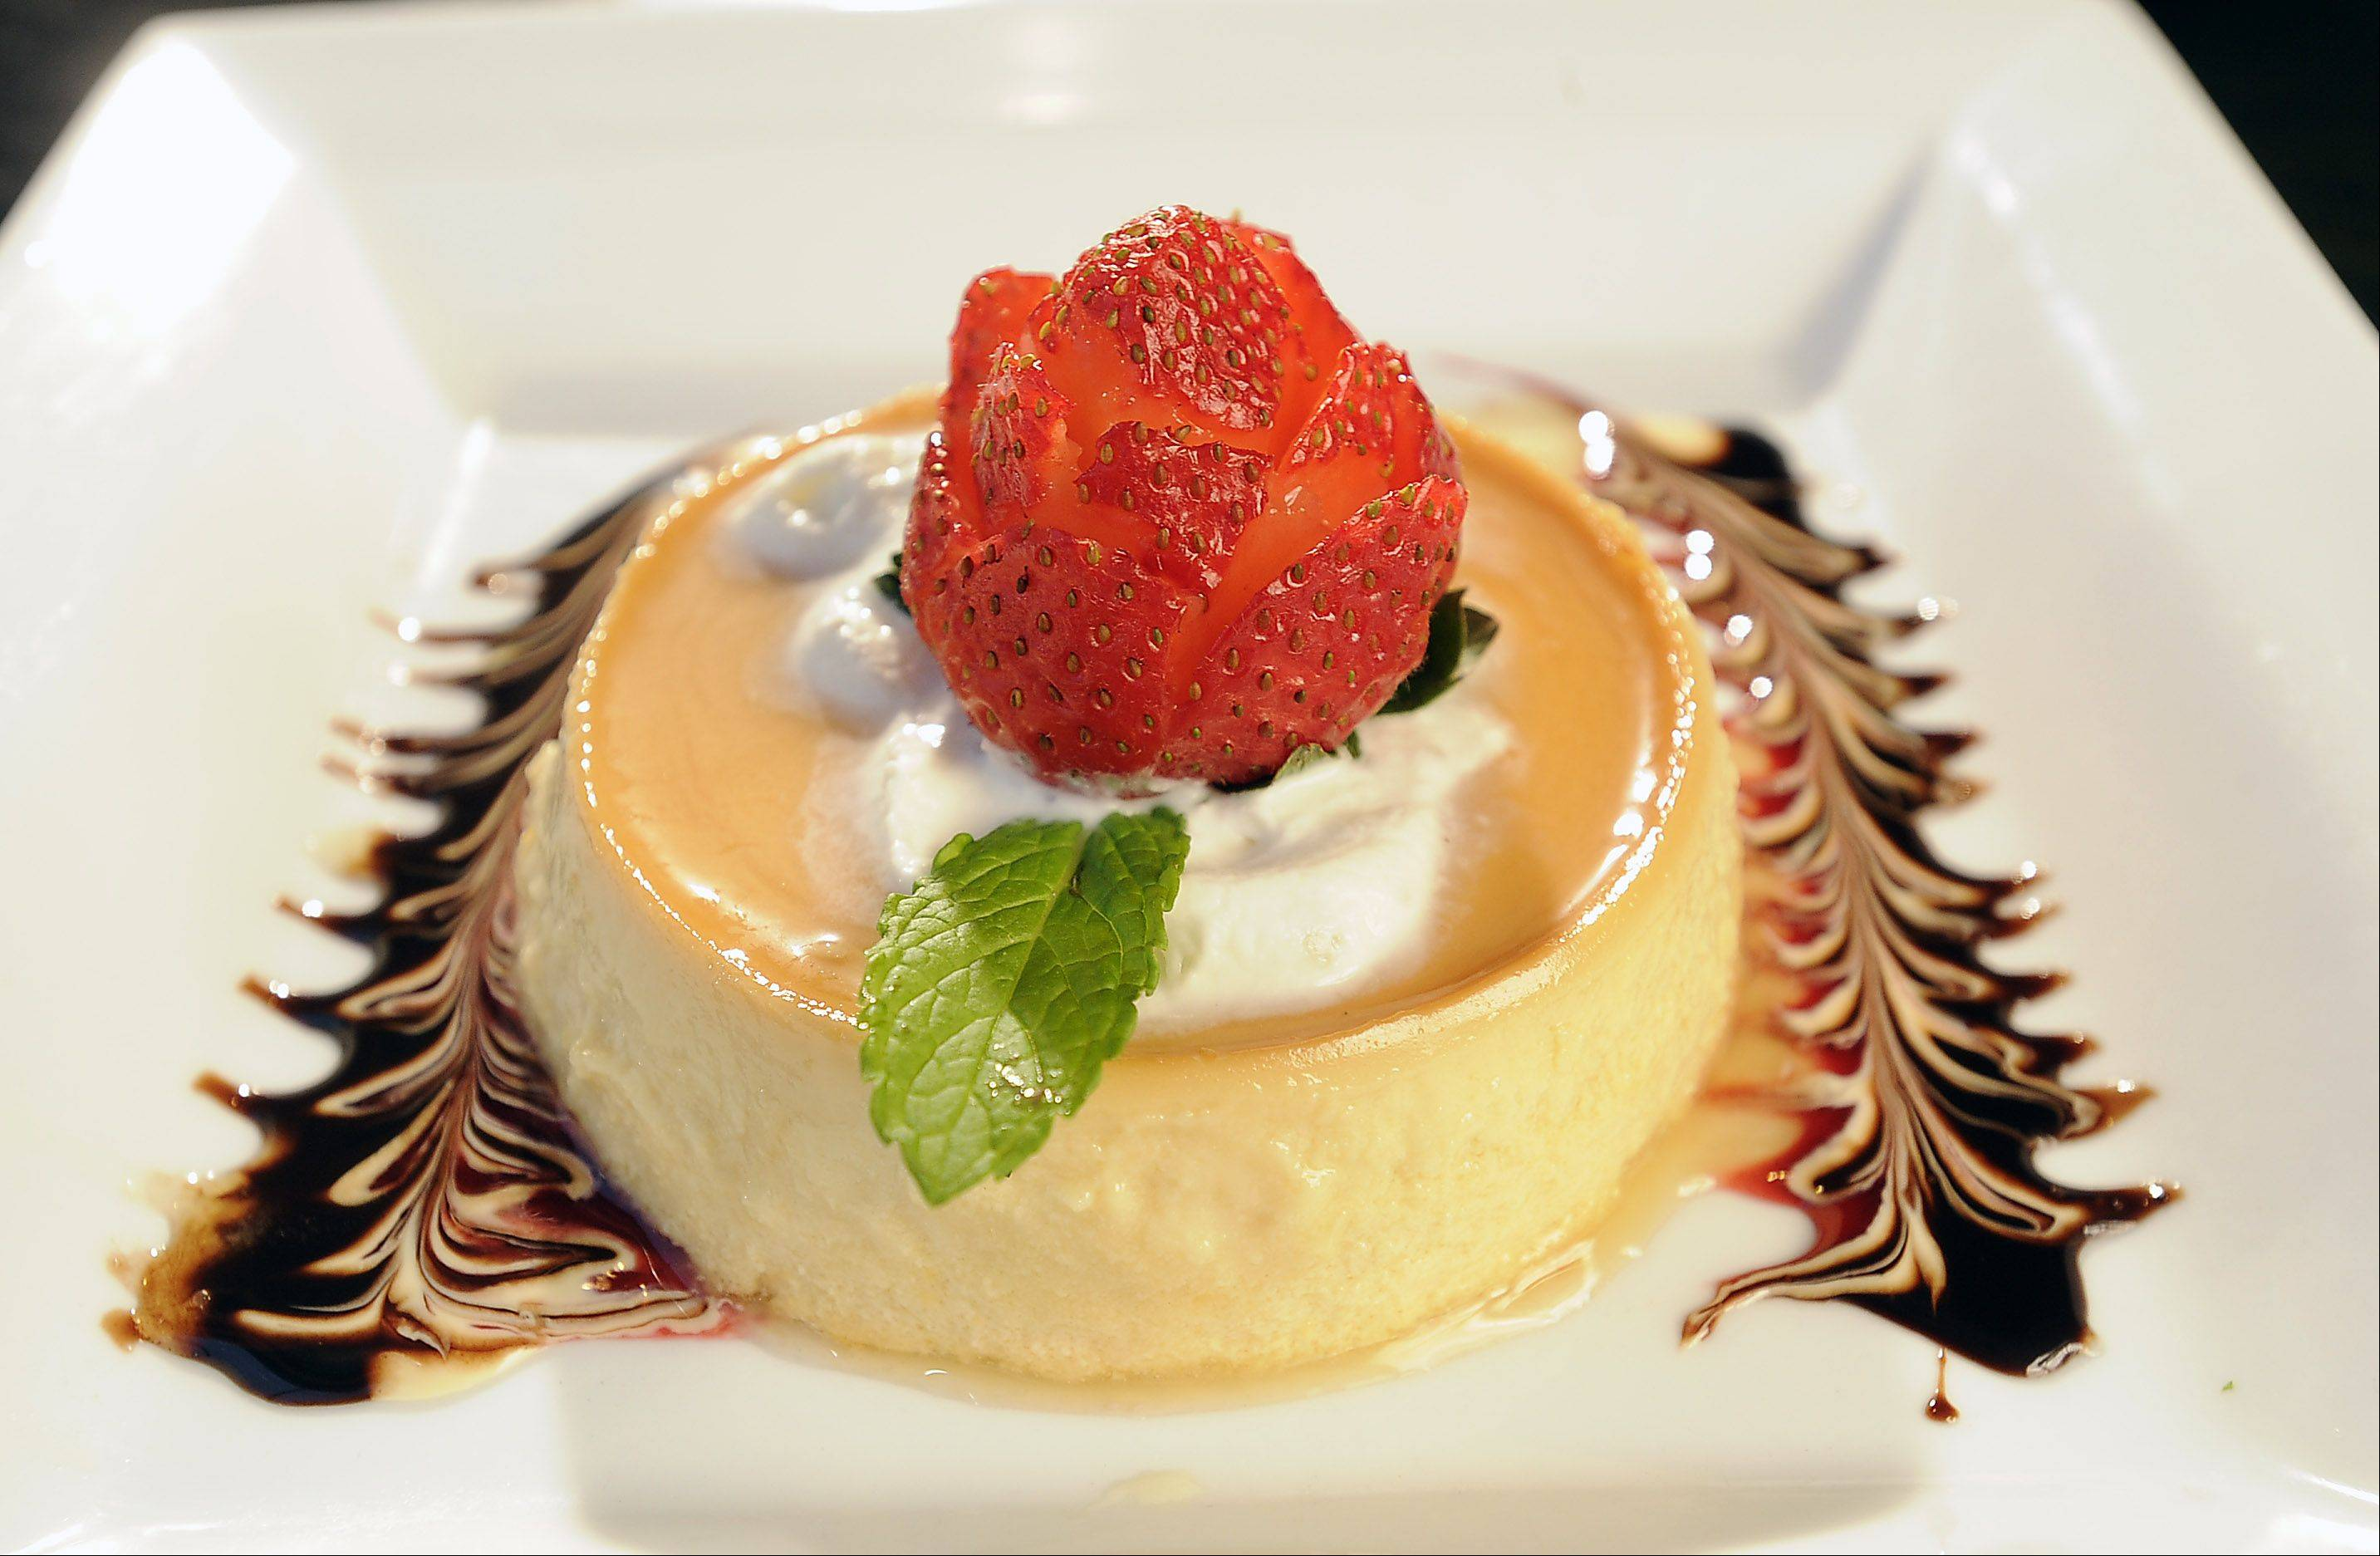 Mia's Cantina is proud of its homemade flan.